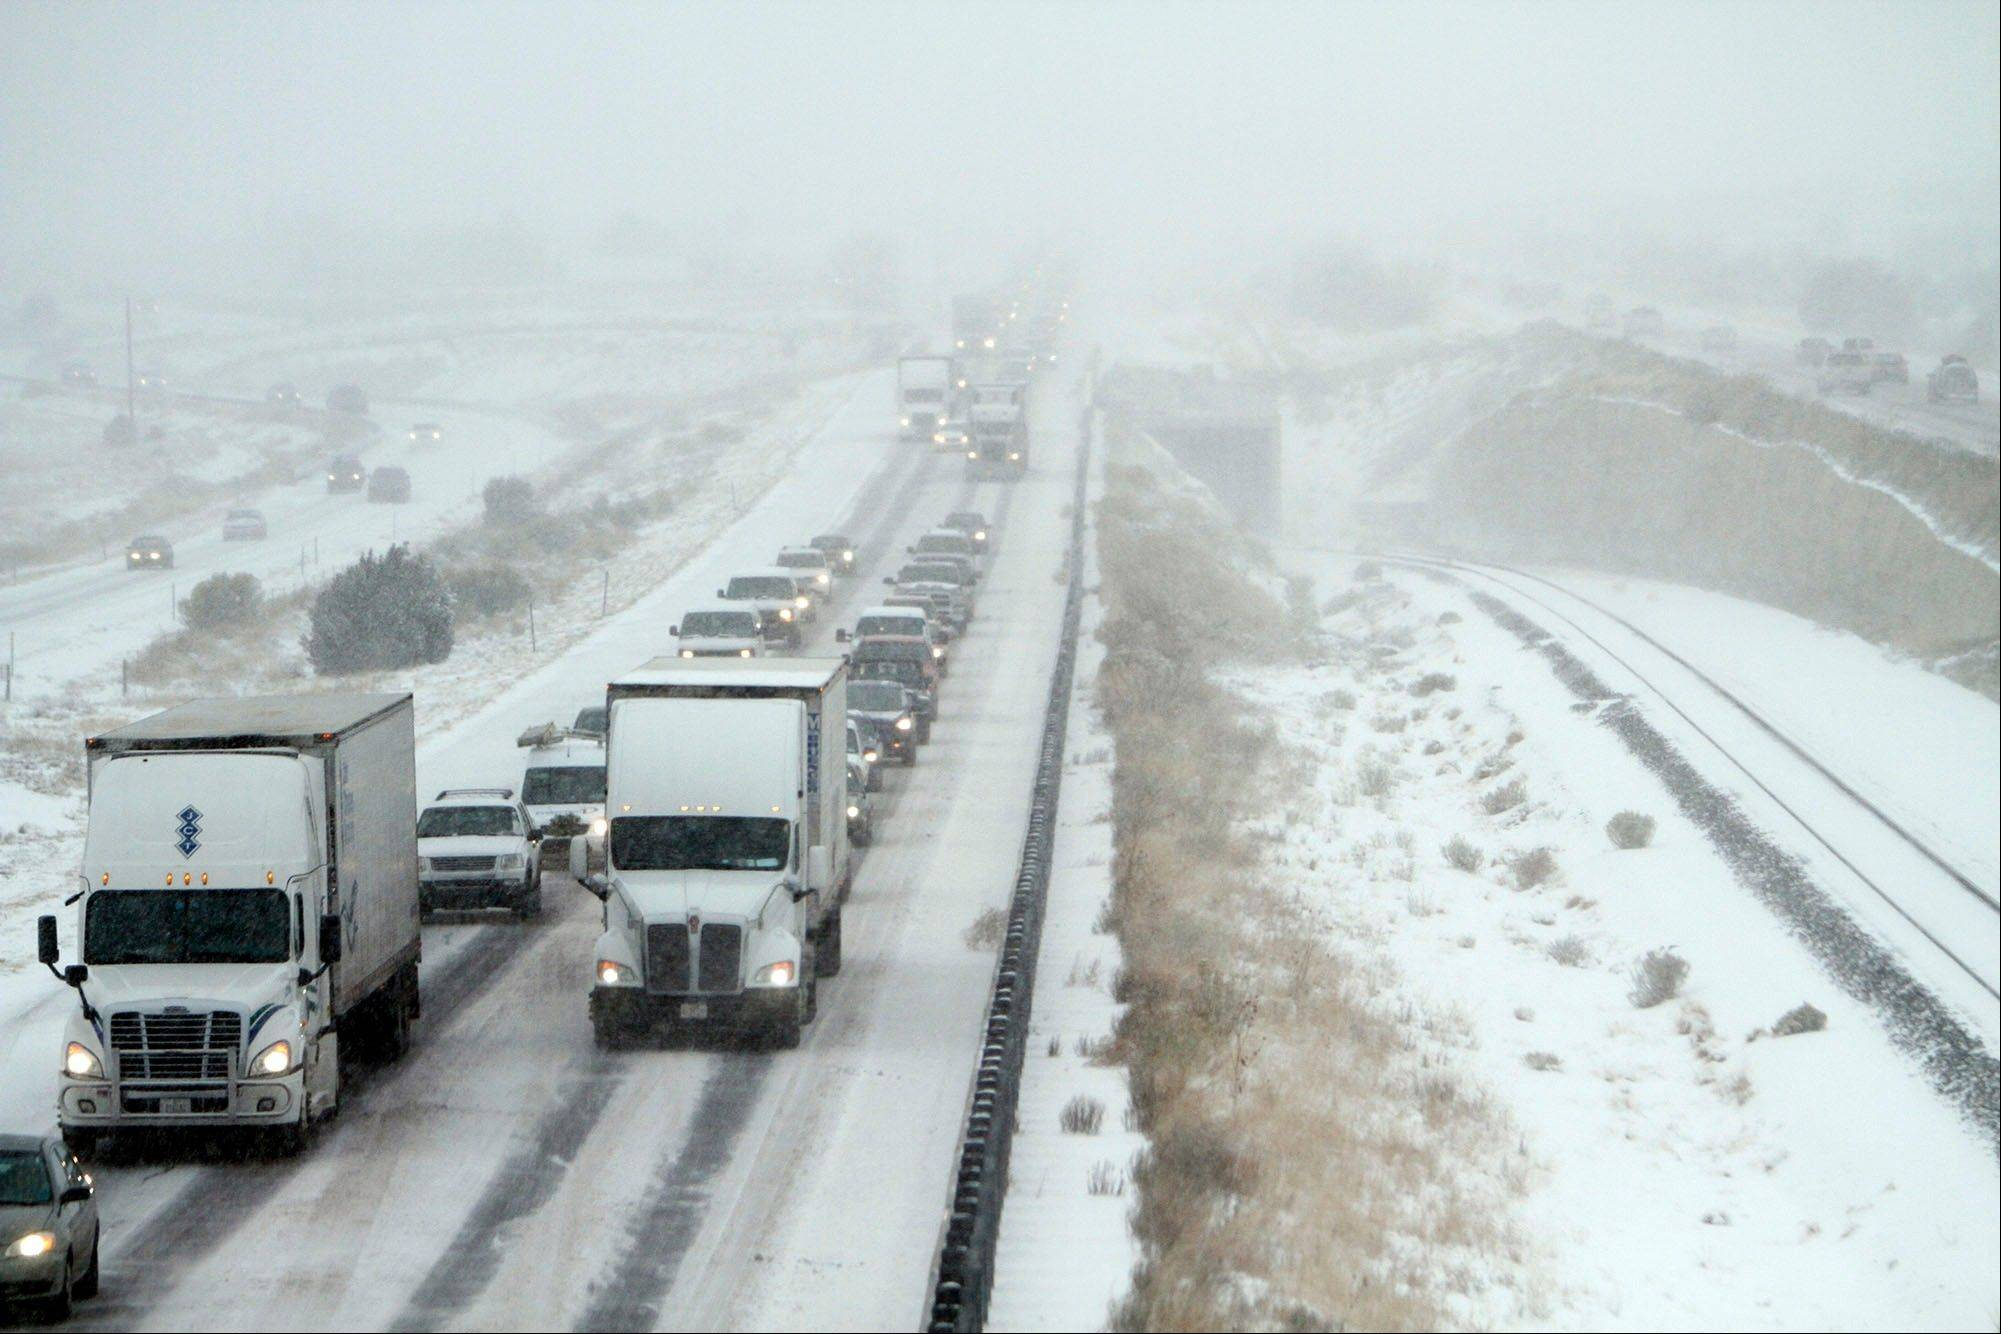 Traffics is backed up on highway I-25 after a winter storm system swept through Thursday, Dec. 5, 2013, in La Bajada, N.M.